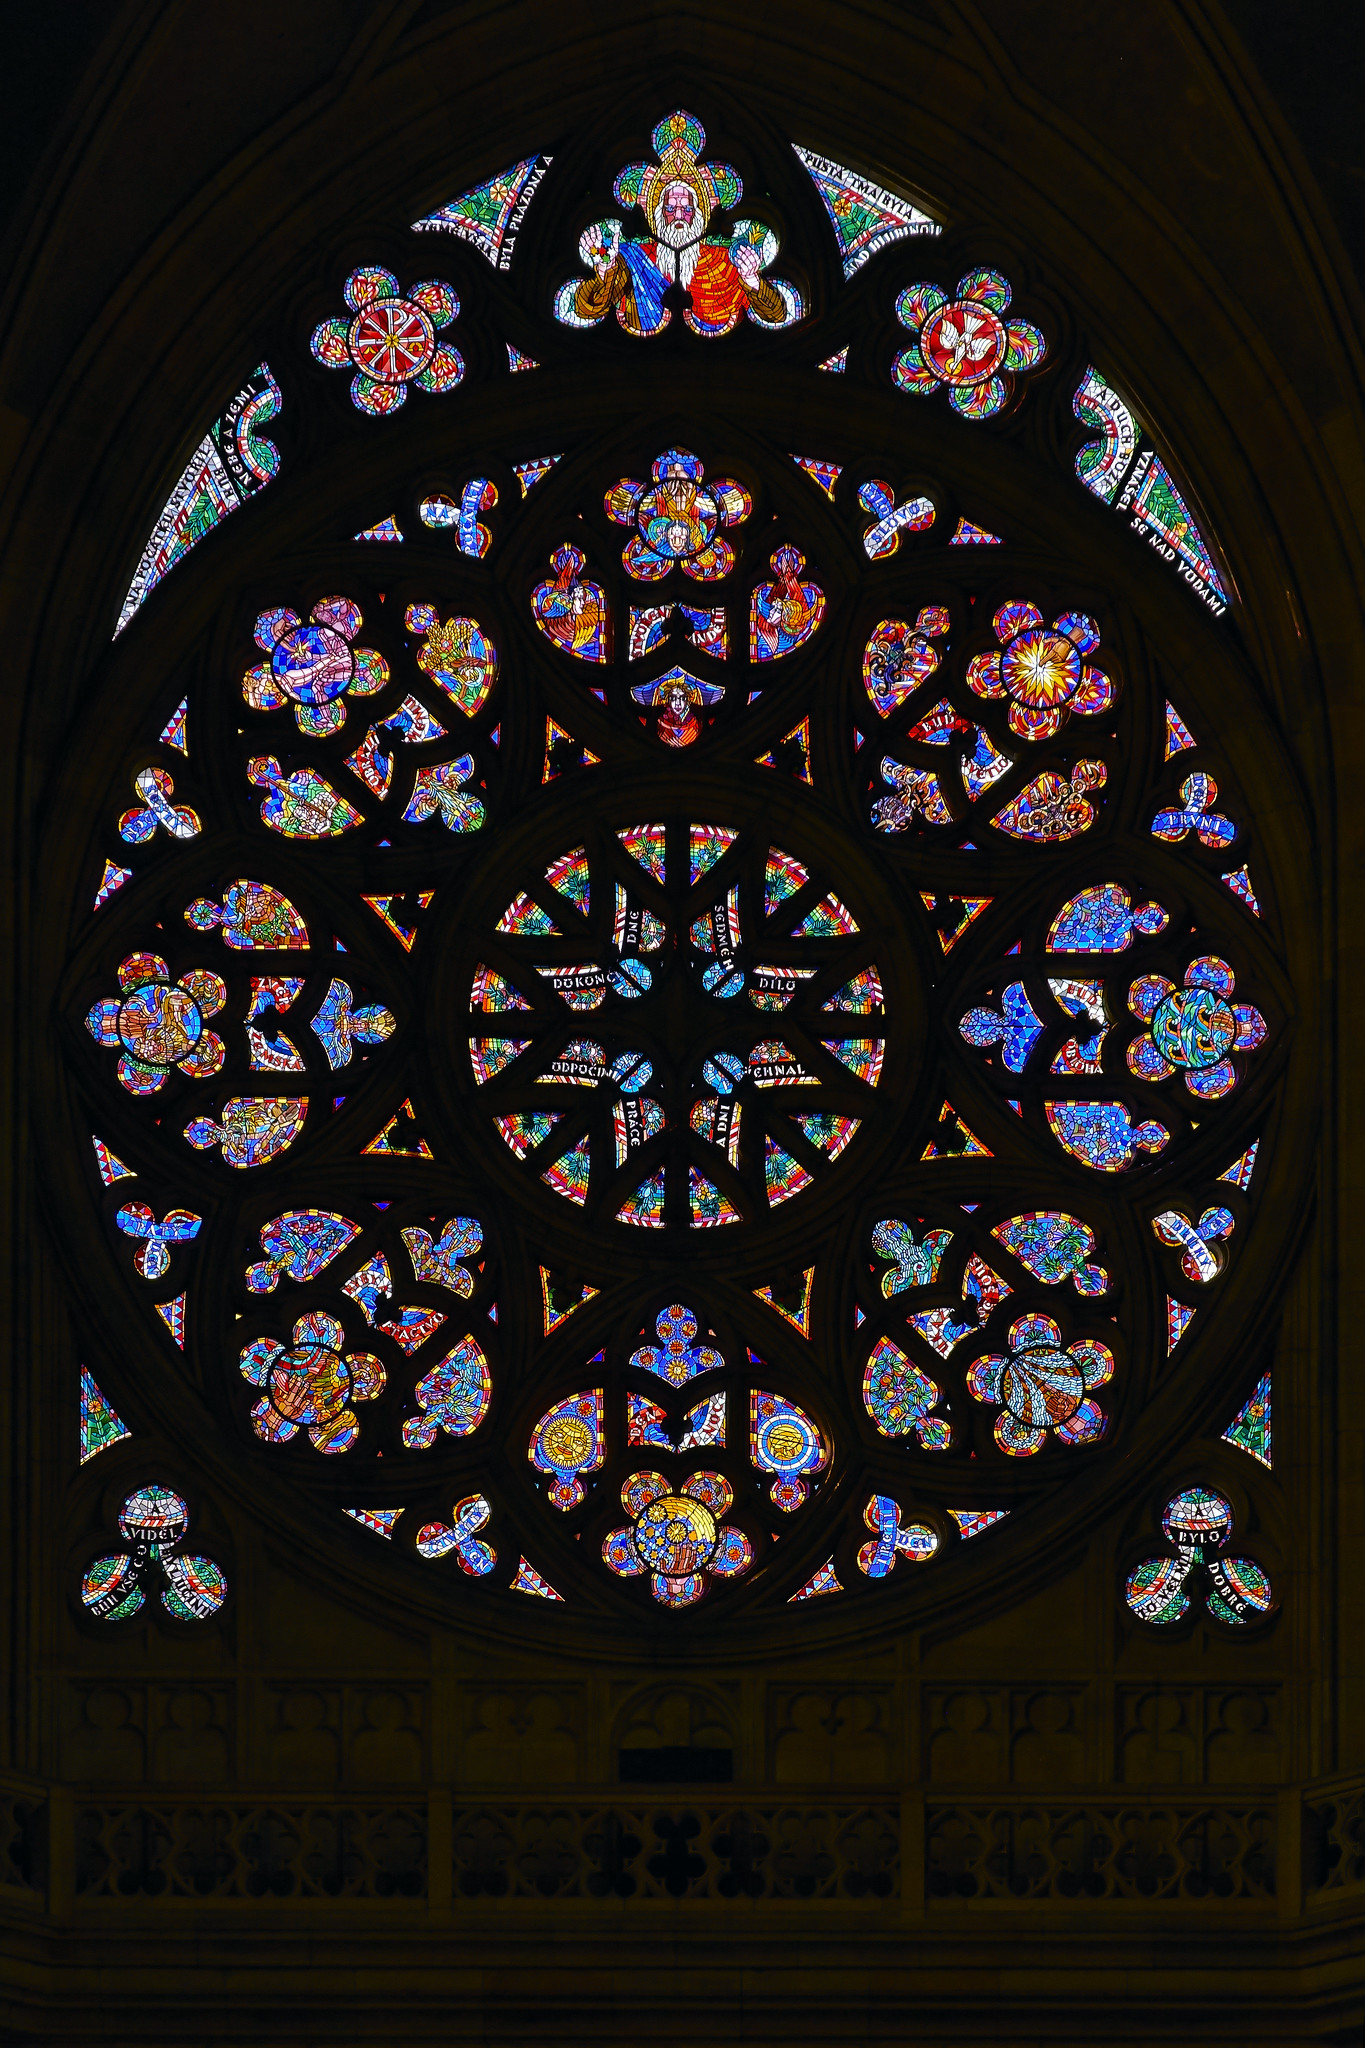 Rose Window - St. Vitus Cathedral